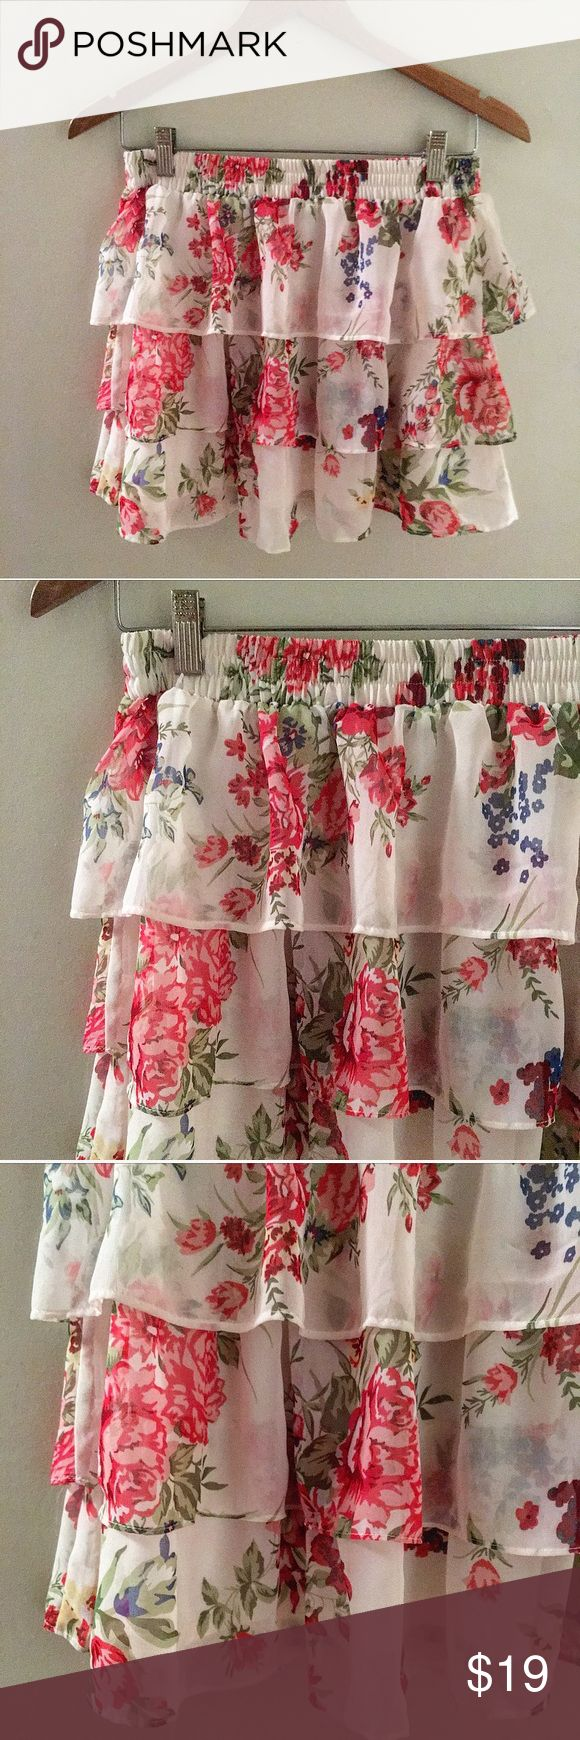 """NWOT IVORY FLORAL RUFFLED SKIRT NEW WITHOUT TAG.  IVORY FLORAL STAMPED RUFFLE TIERD SKIRT WITH ELASTIC WAISTLINE 100% POLYESTER LENGTH: 14"""" Forever 21 Skirts Mini"""